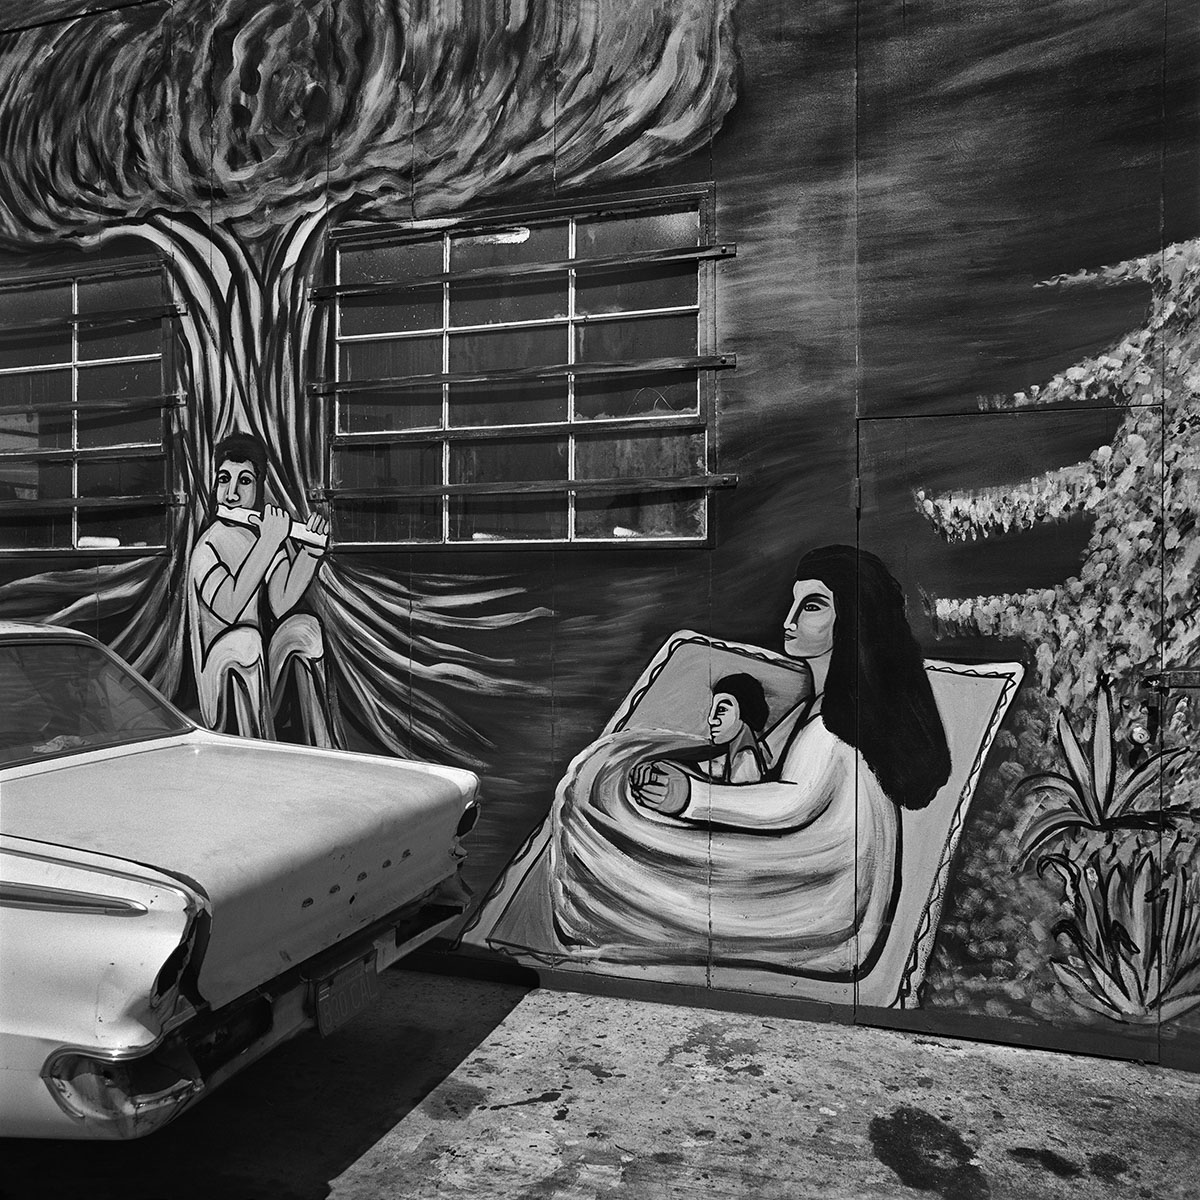 Mother & Child Mural, East Los Angeles, 1978